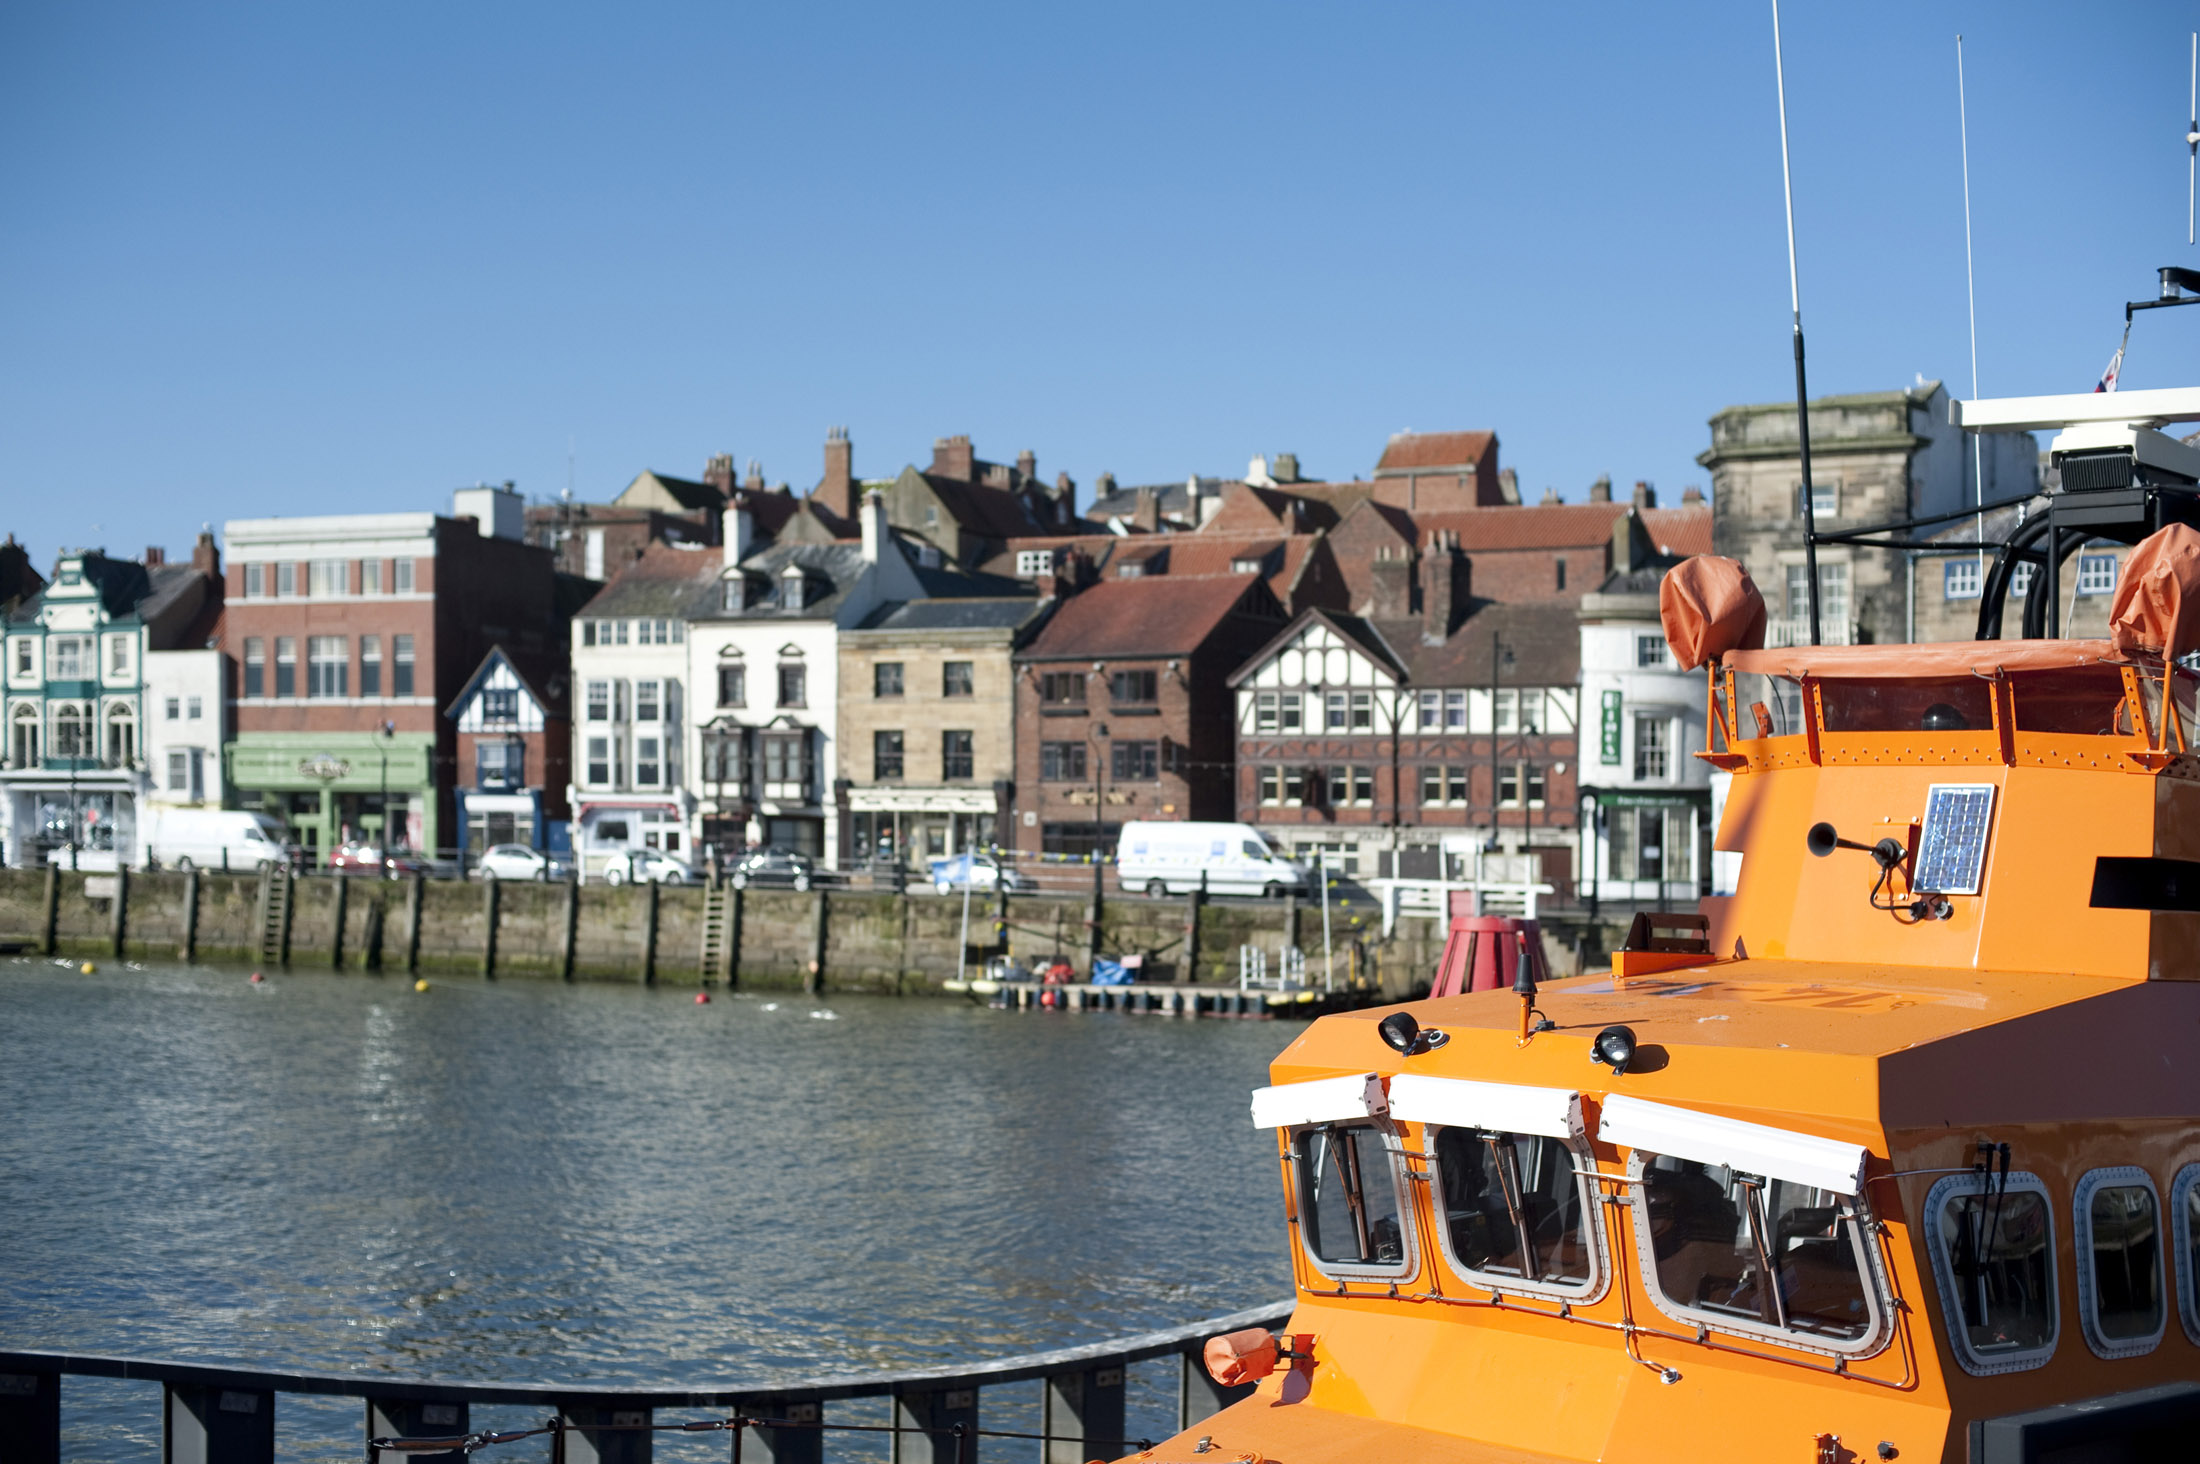 whitby RNLI life boat moored at the quay side